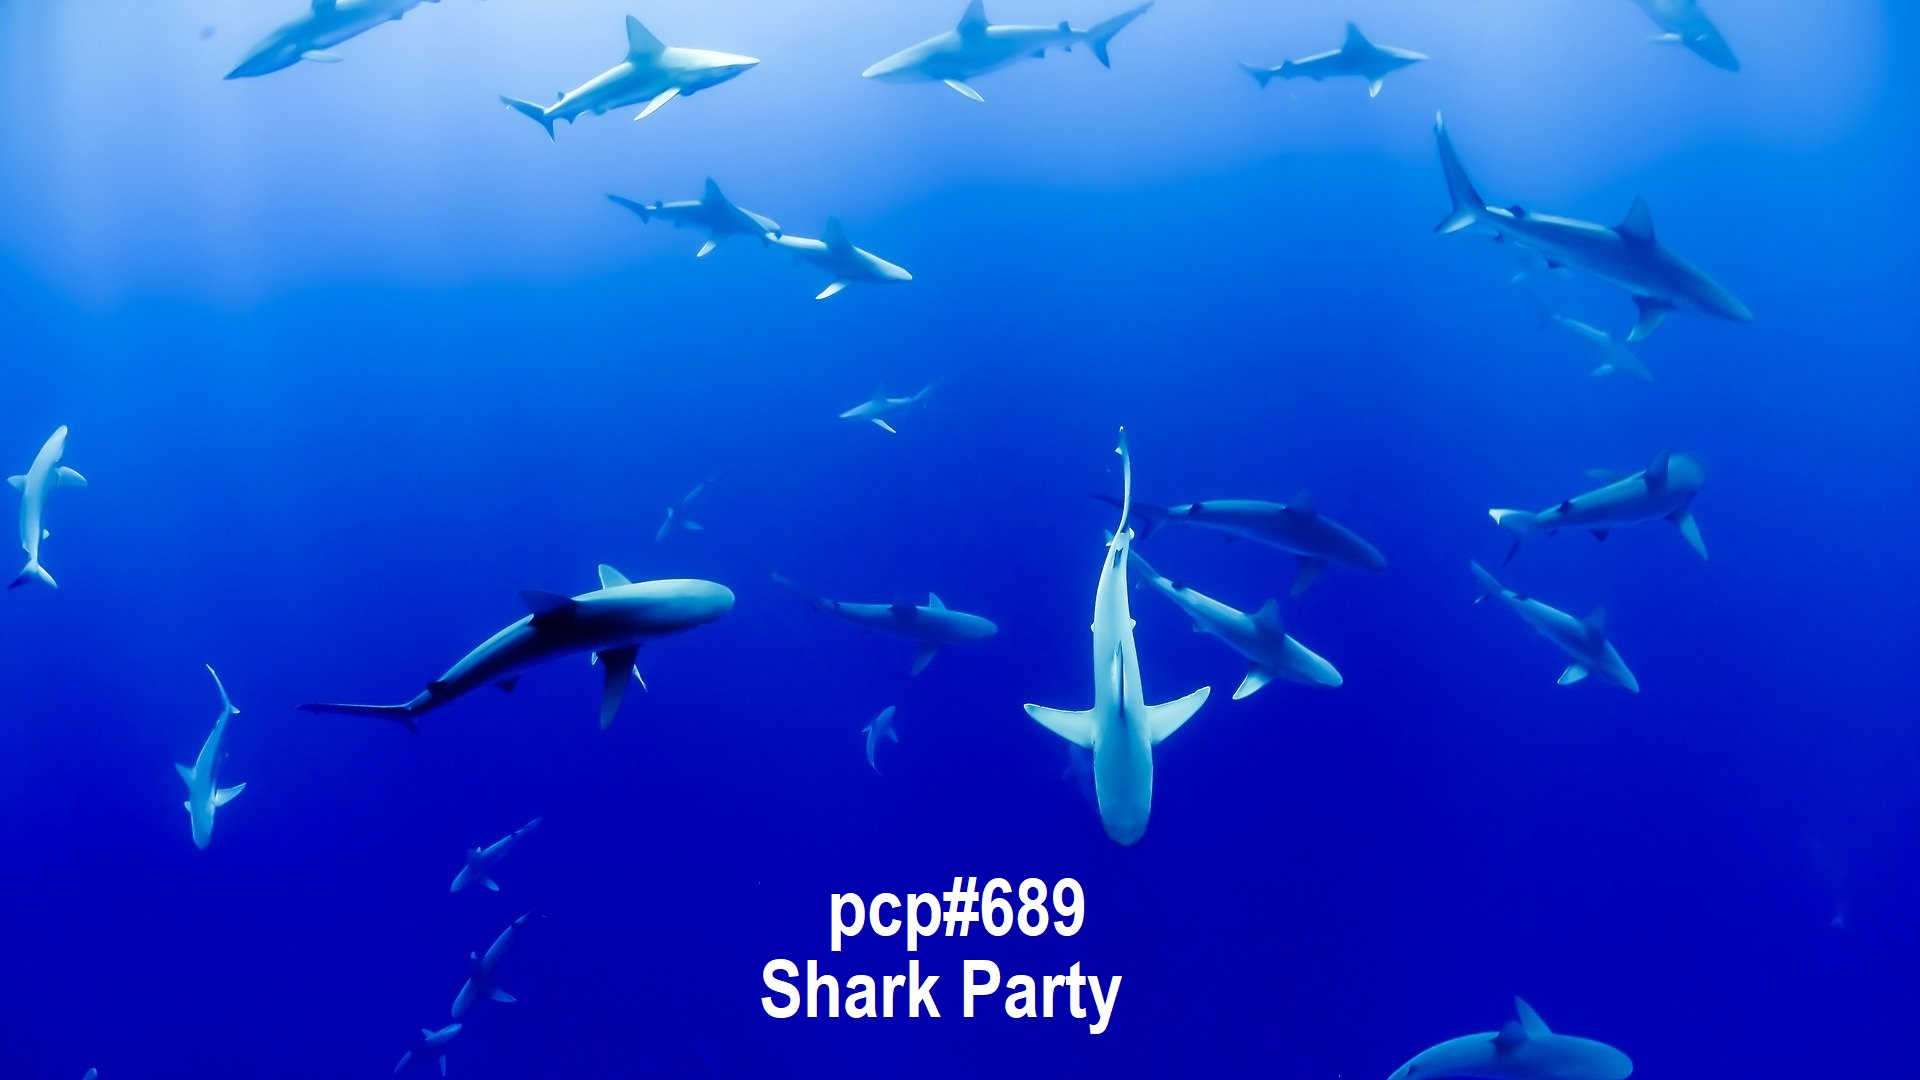 PCP#688... Shark Party!